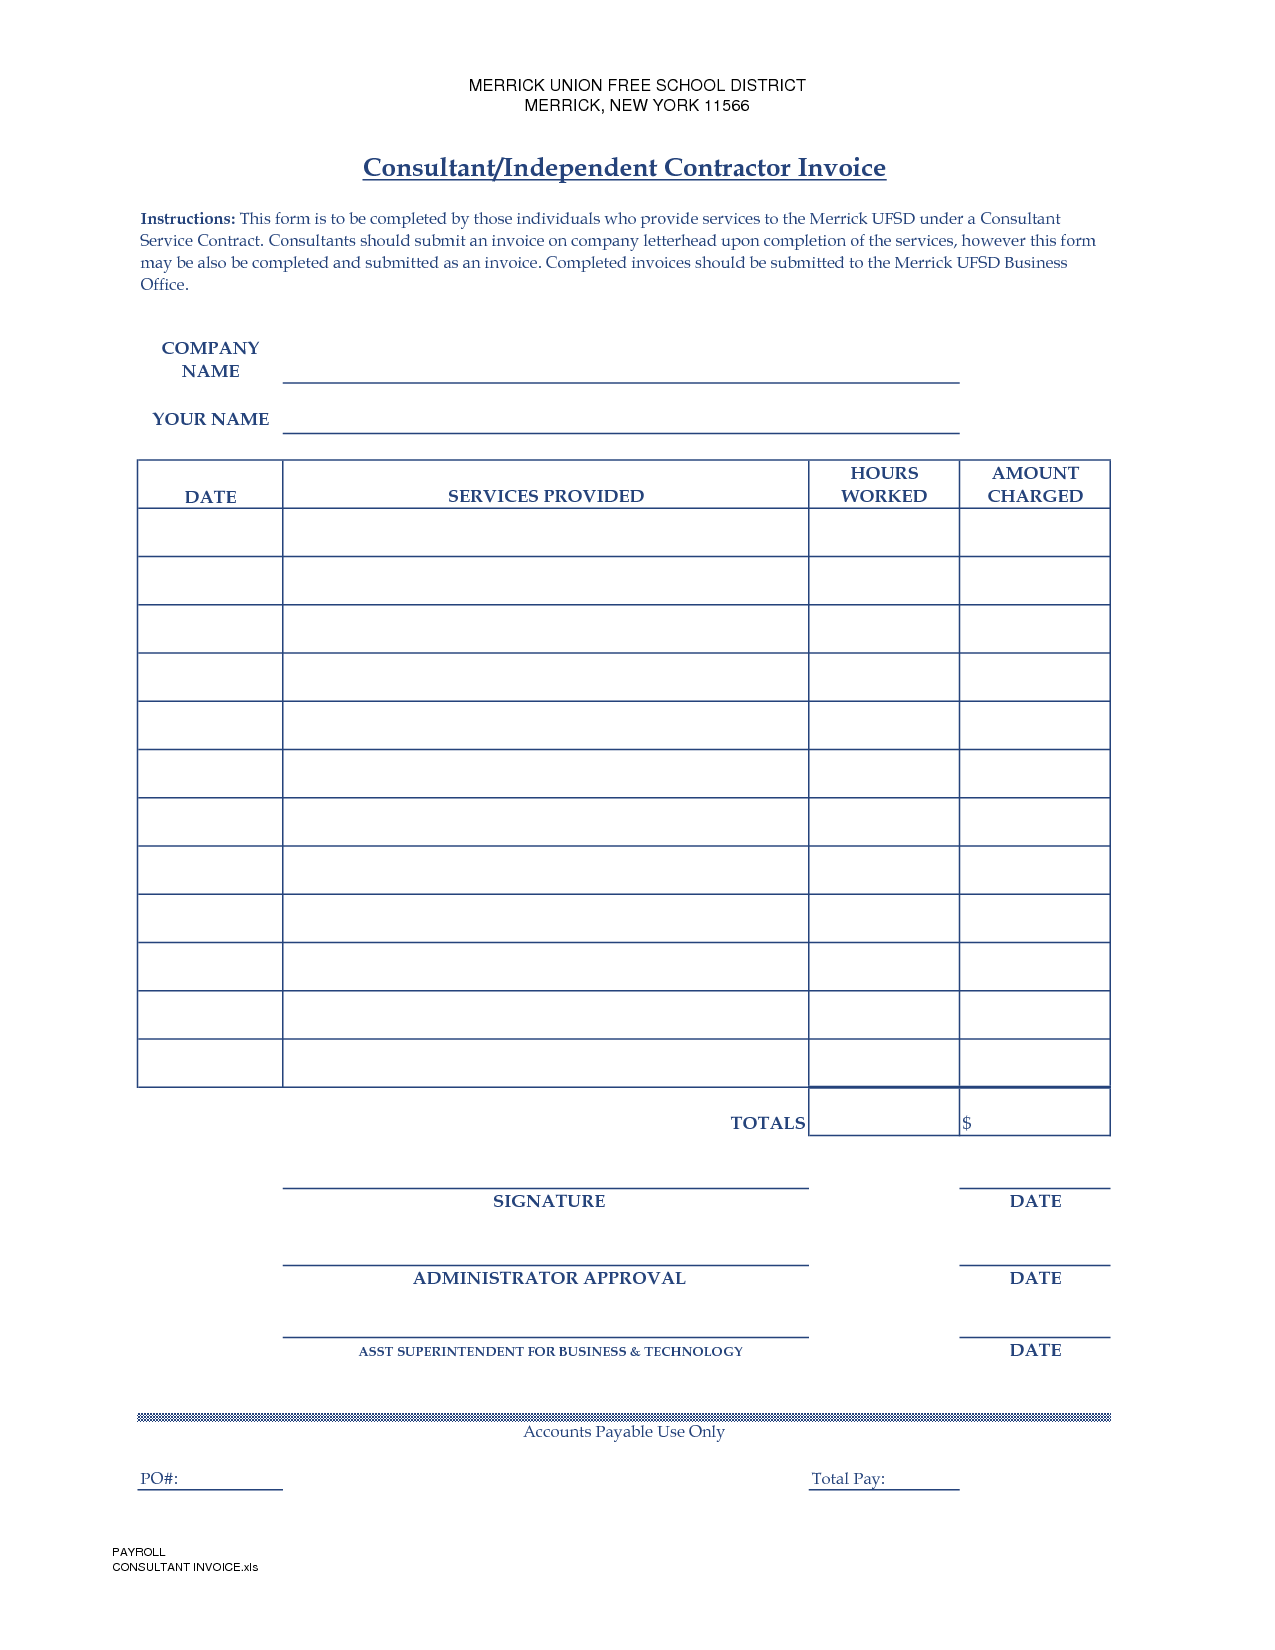 Independent Contractor Invoice Template Free  Invoice Example. Black Background Design. Gender Reveal Invitations Template. Lease Rental Agreement Template. Notary Signature Block Template. Apa Template For Pages. Performance Appraisal Template Word. Action Plan Template For Employee. Cover Page Design